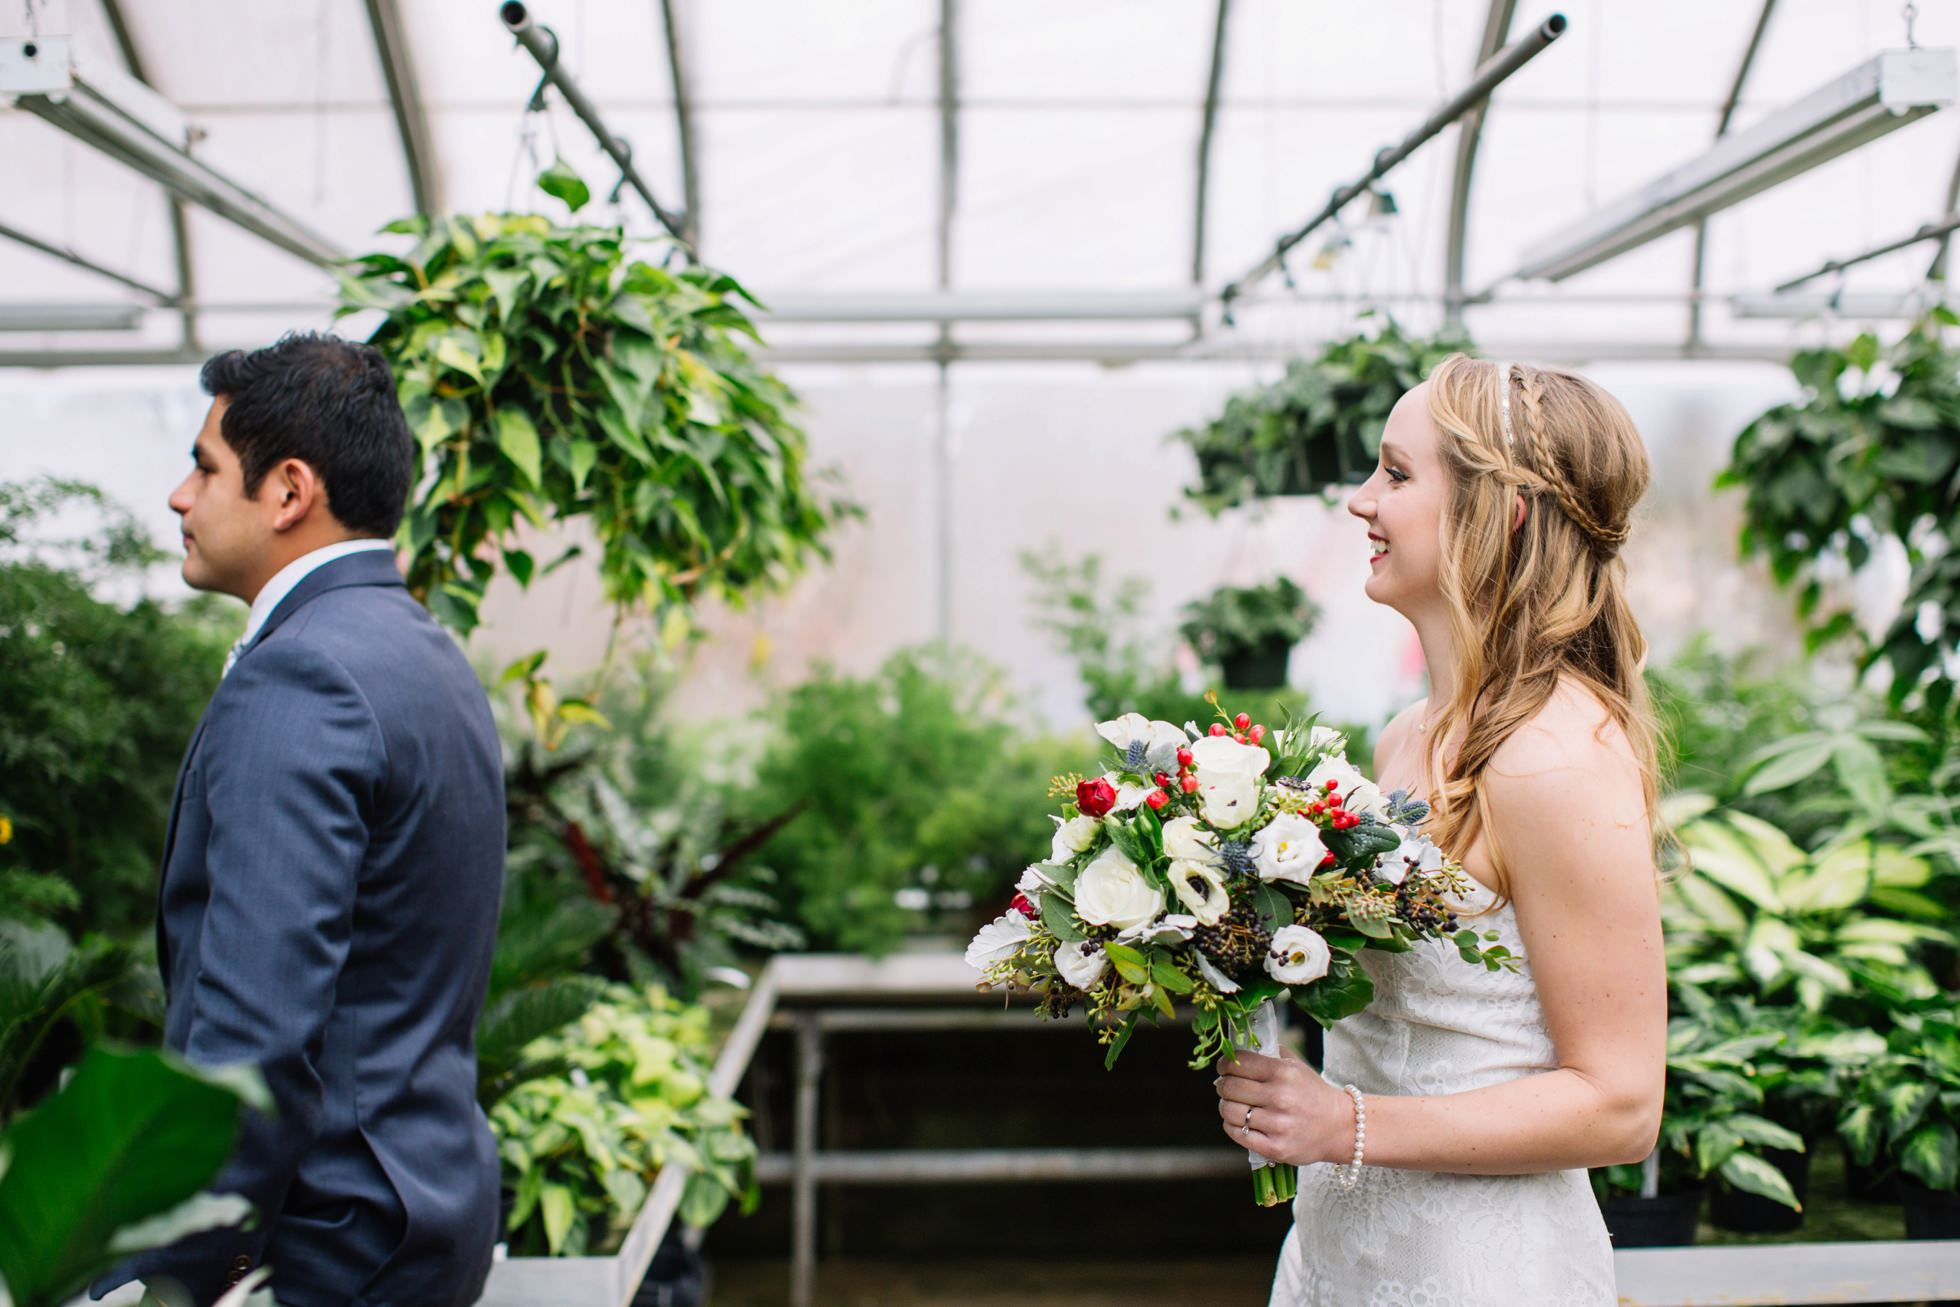 ott's exotic plants wedding photos